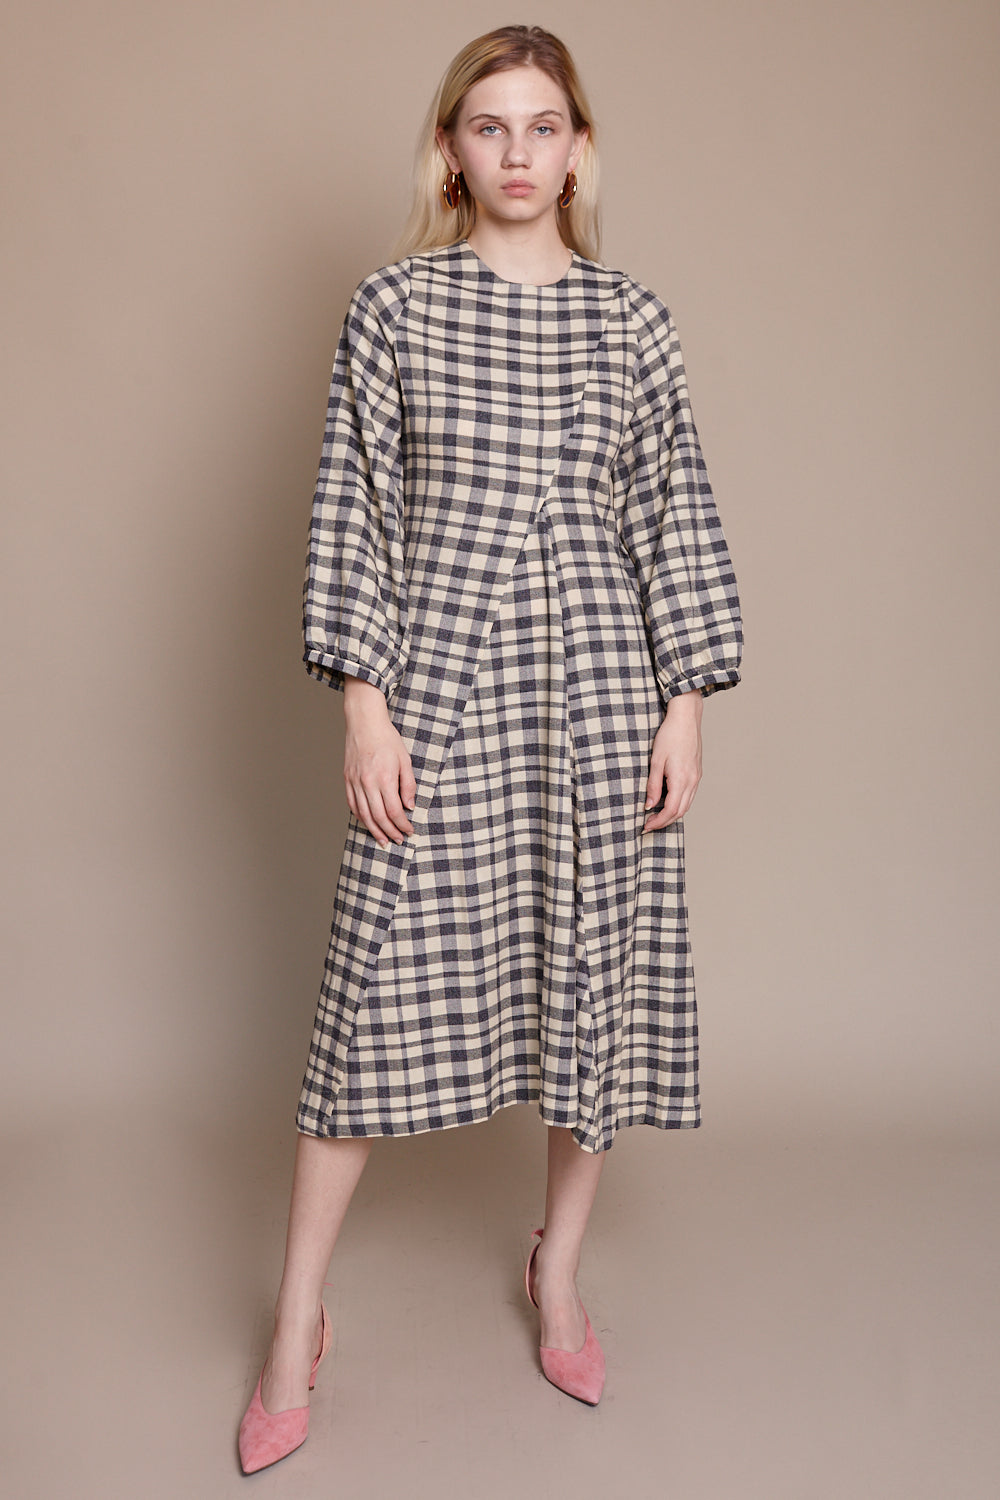 Wray Date Dress in Grey Check - Vert & Vogue